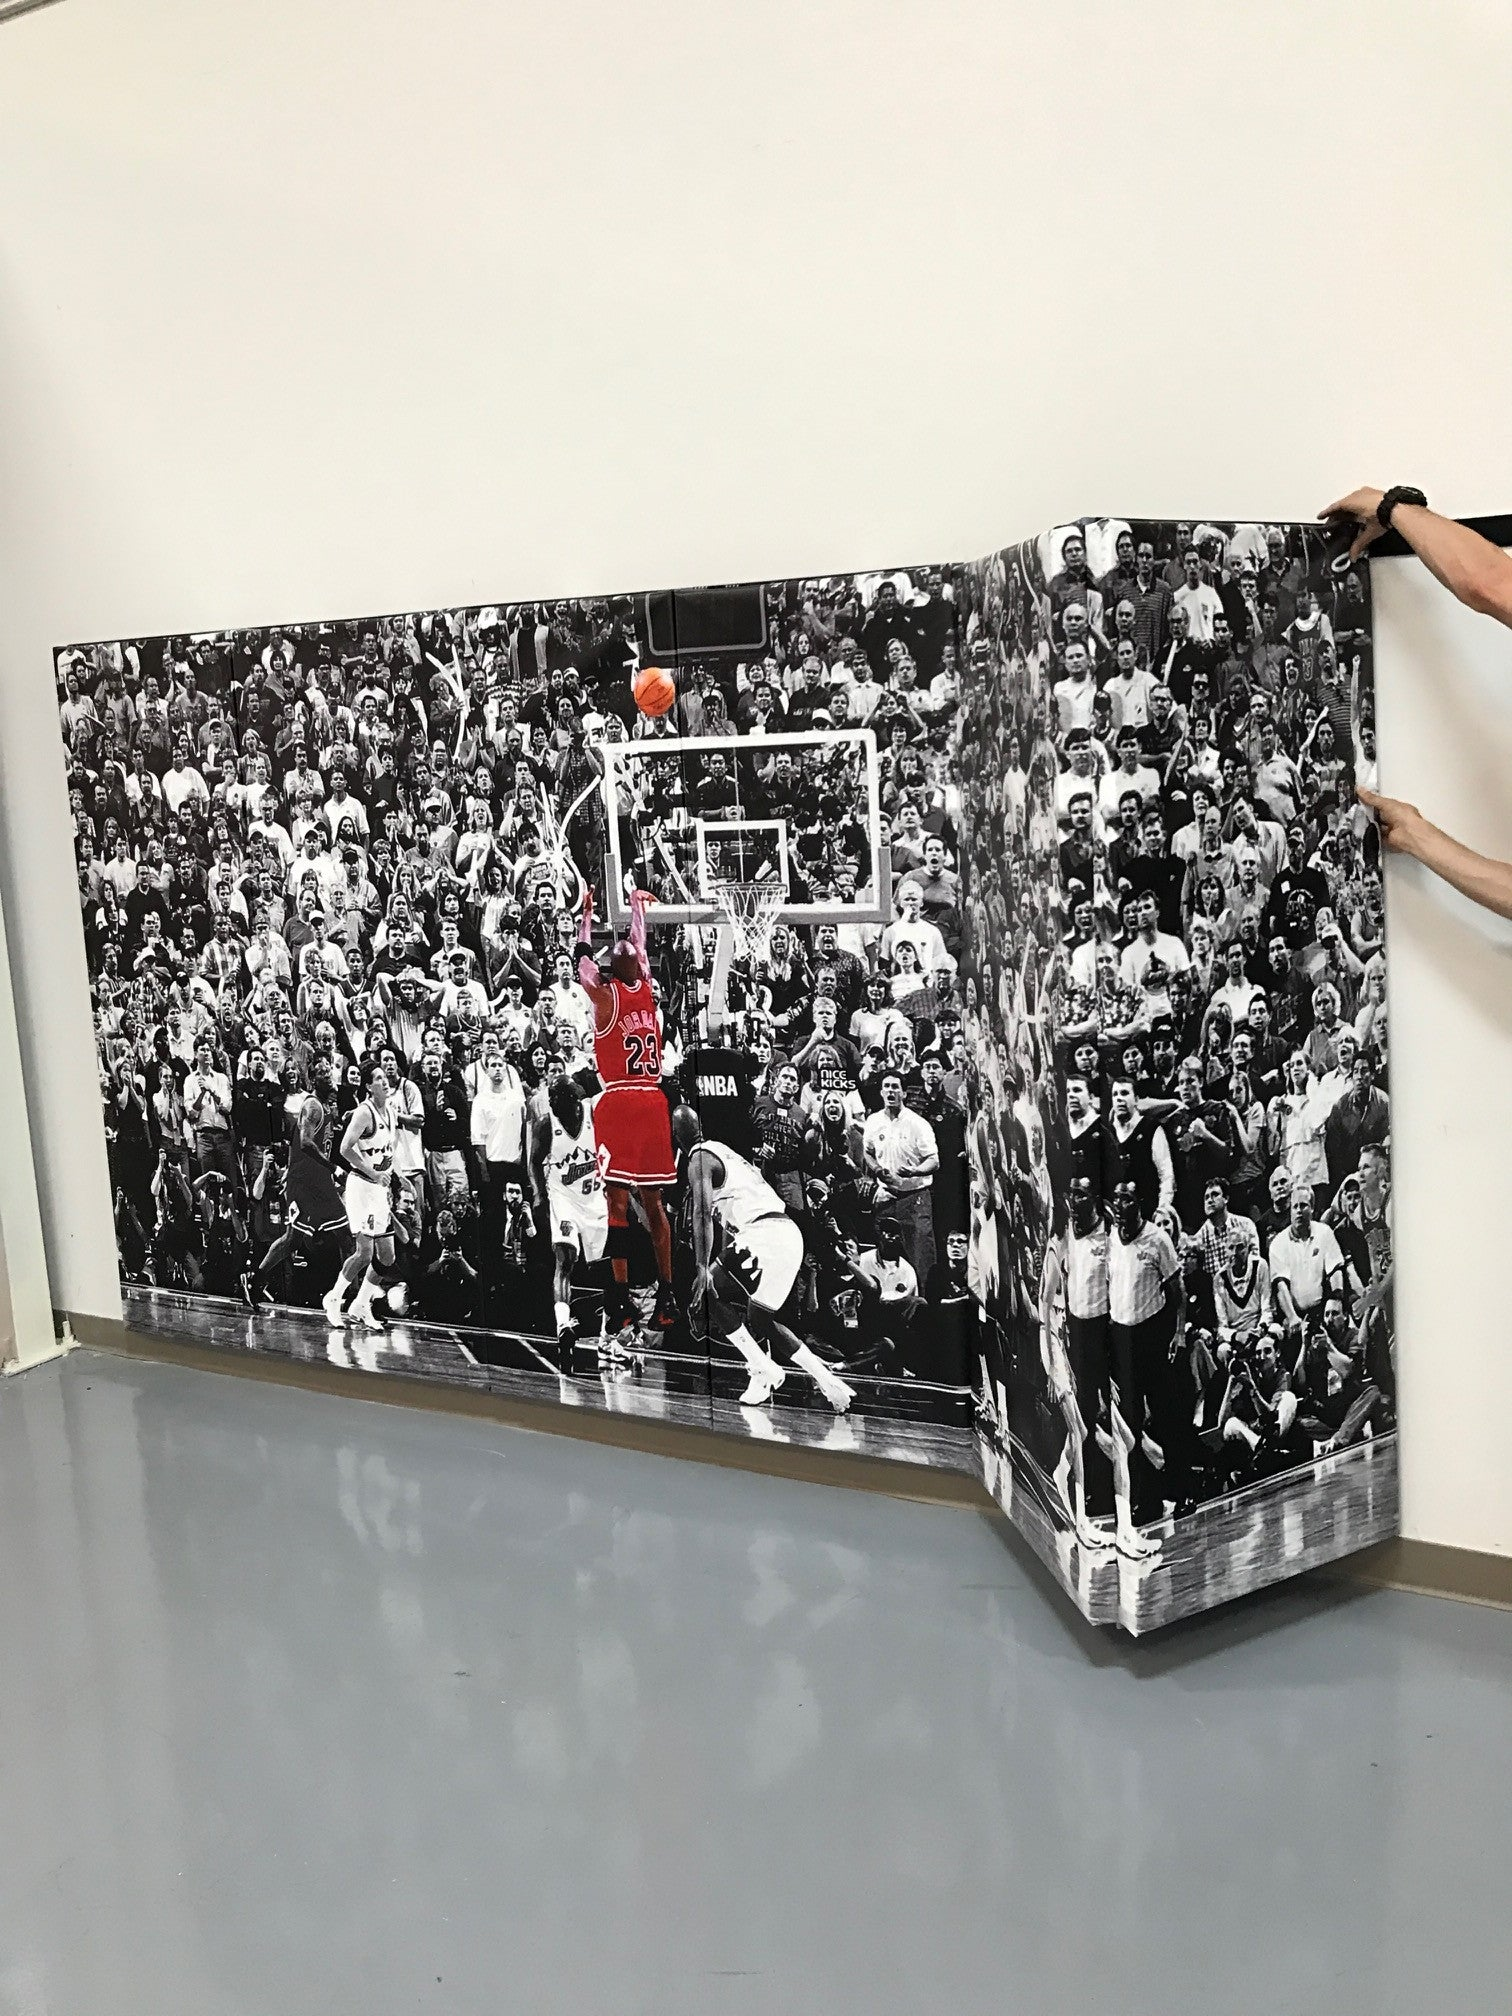 "Digitally Printed 6' x 12' x 2"" Removable Folding Gym Wall Pad"